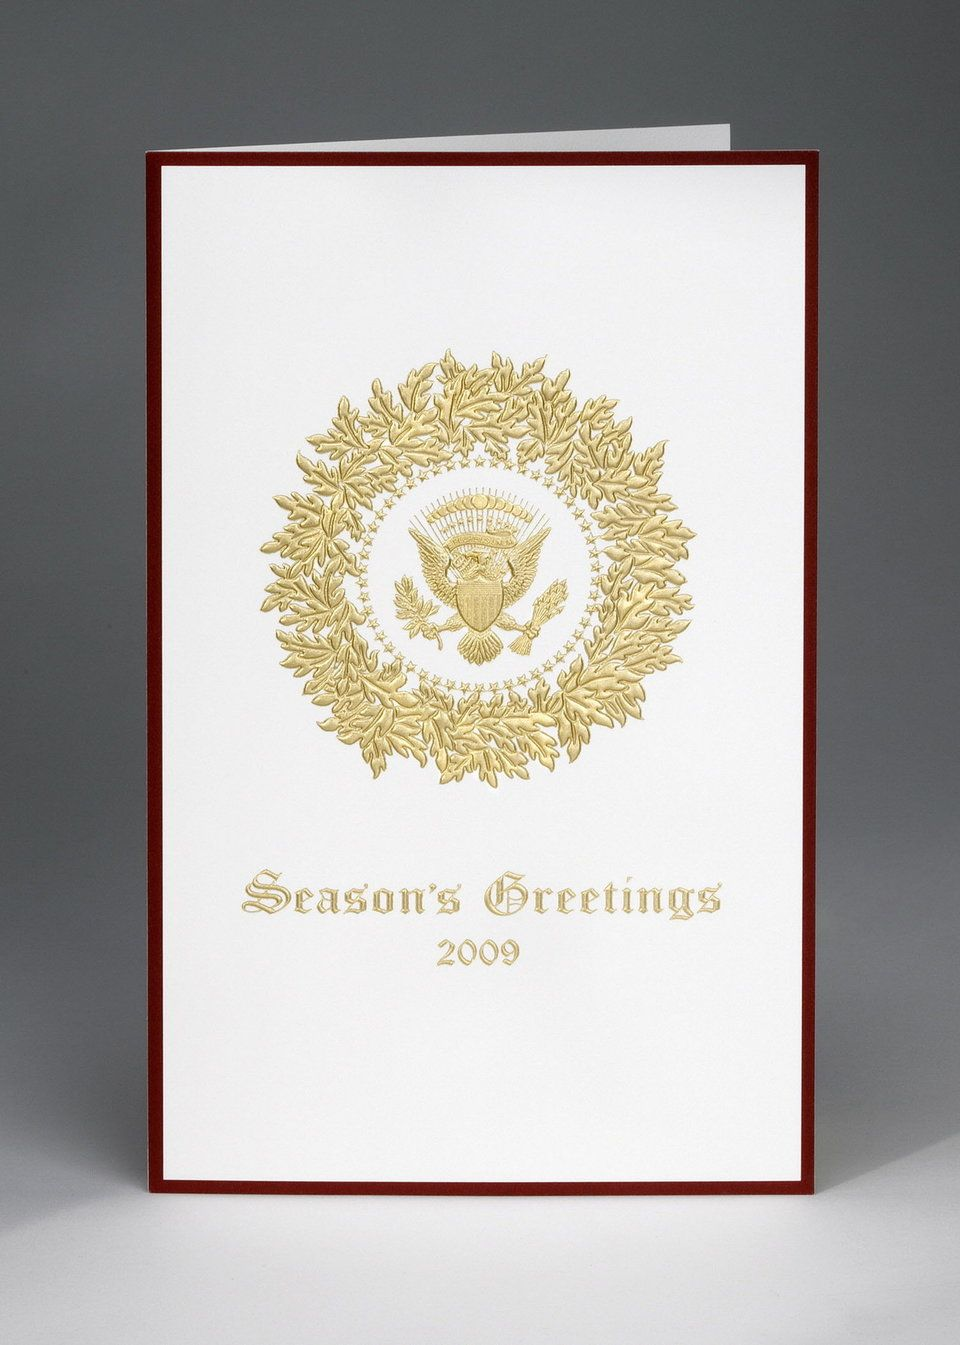 Obama Christmas Card 2019 Pin by HITC Inspiration Boards on I Miss Obama in 2019 | White